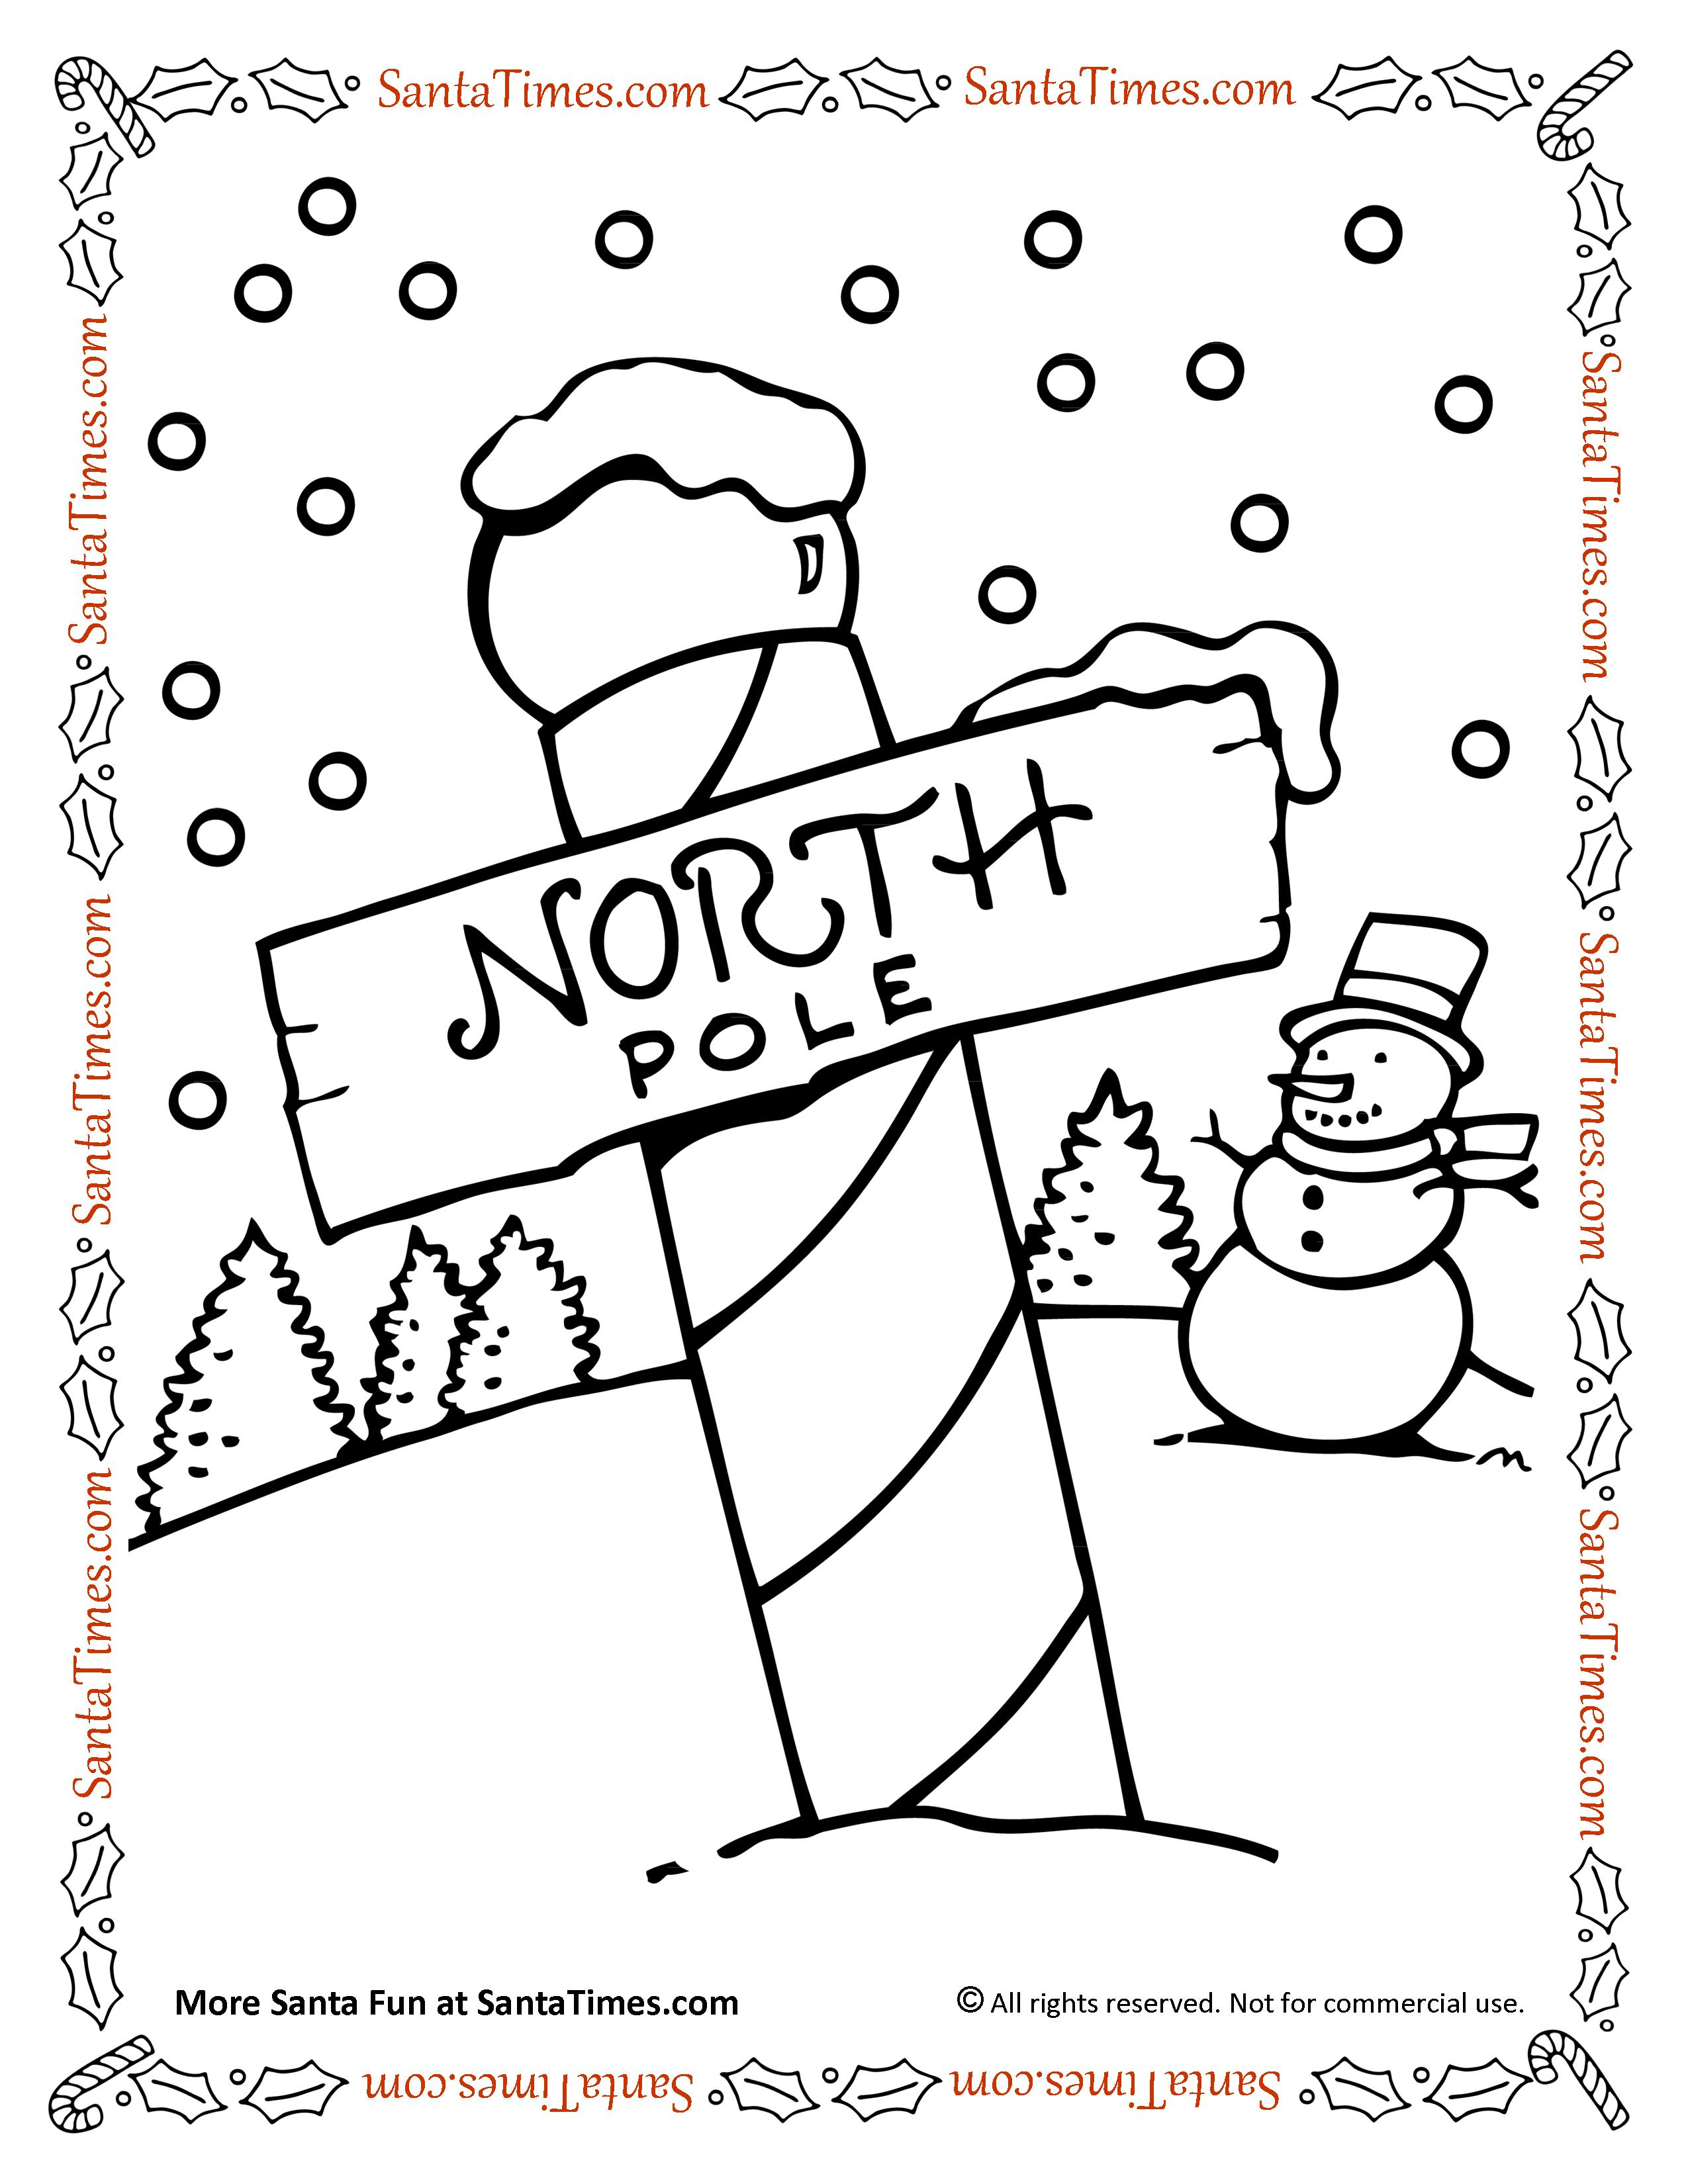 north pole coloring pages North Pole Coloring Page north pole coloring pages